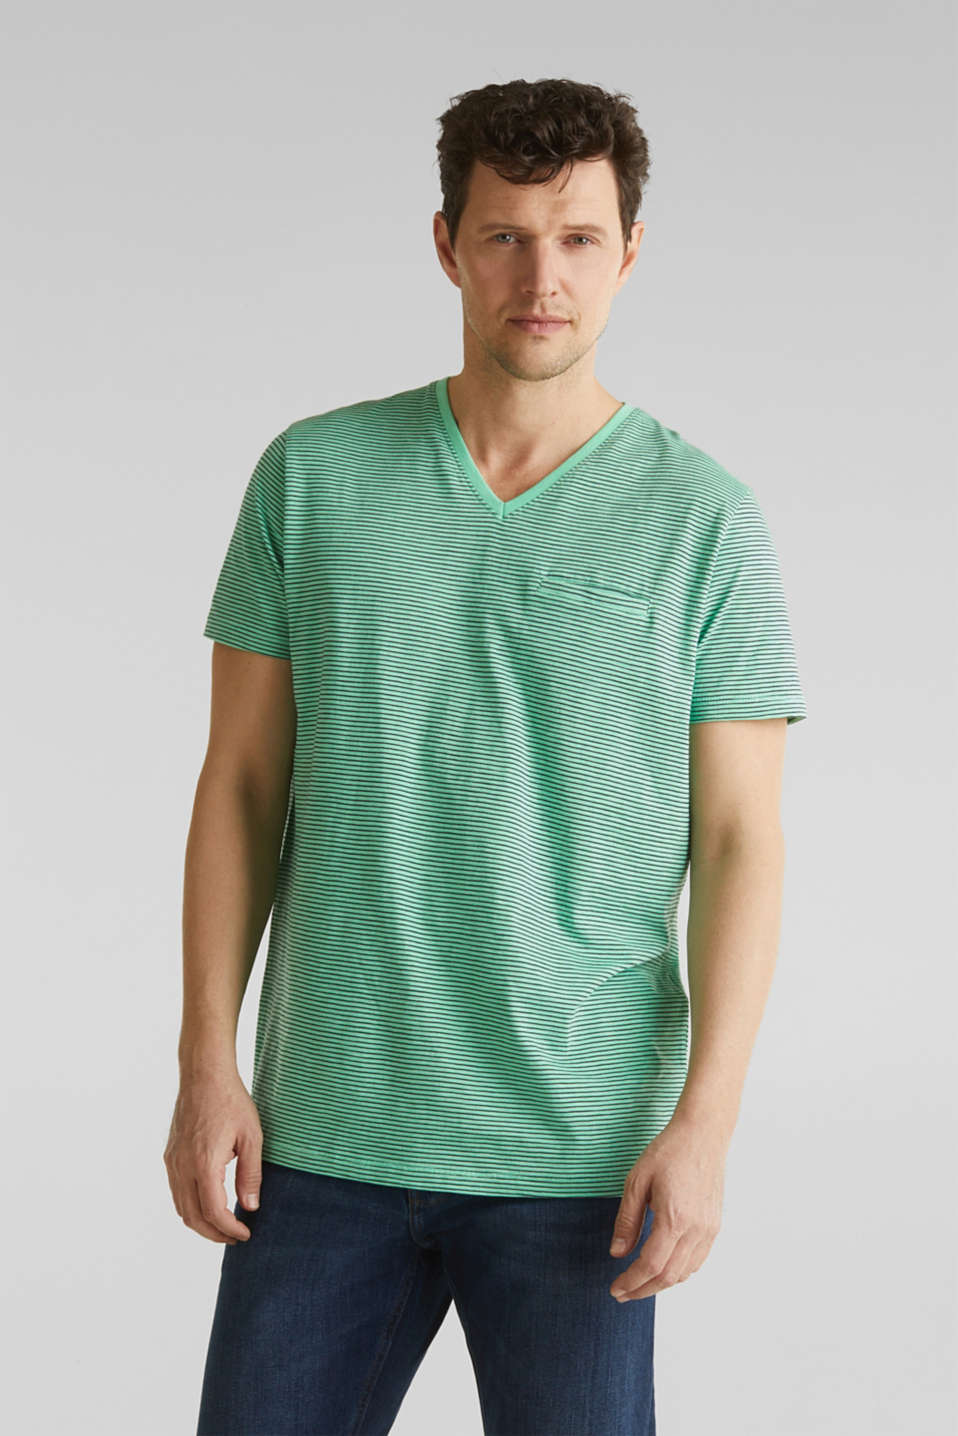 Esprit - Jersey T-shirt in 100% cotton